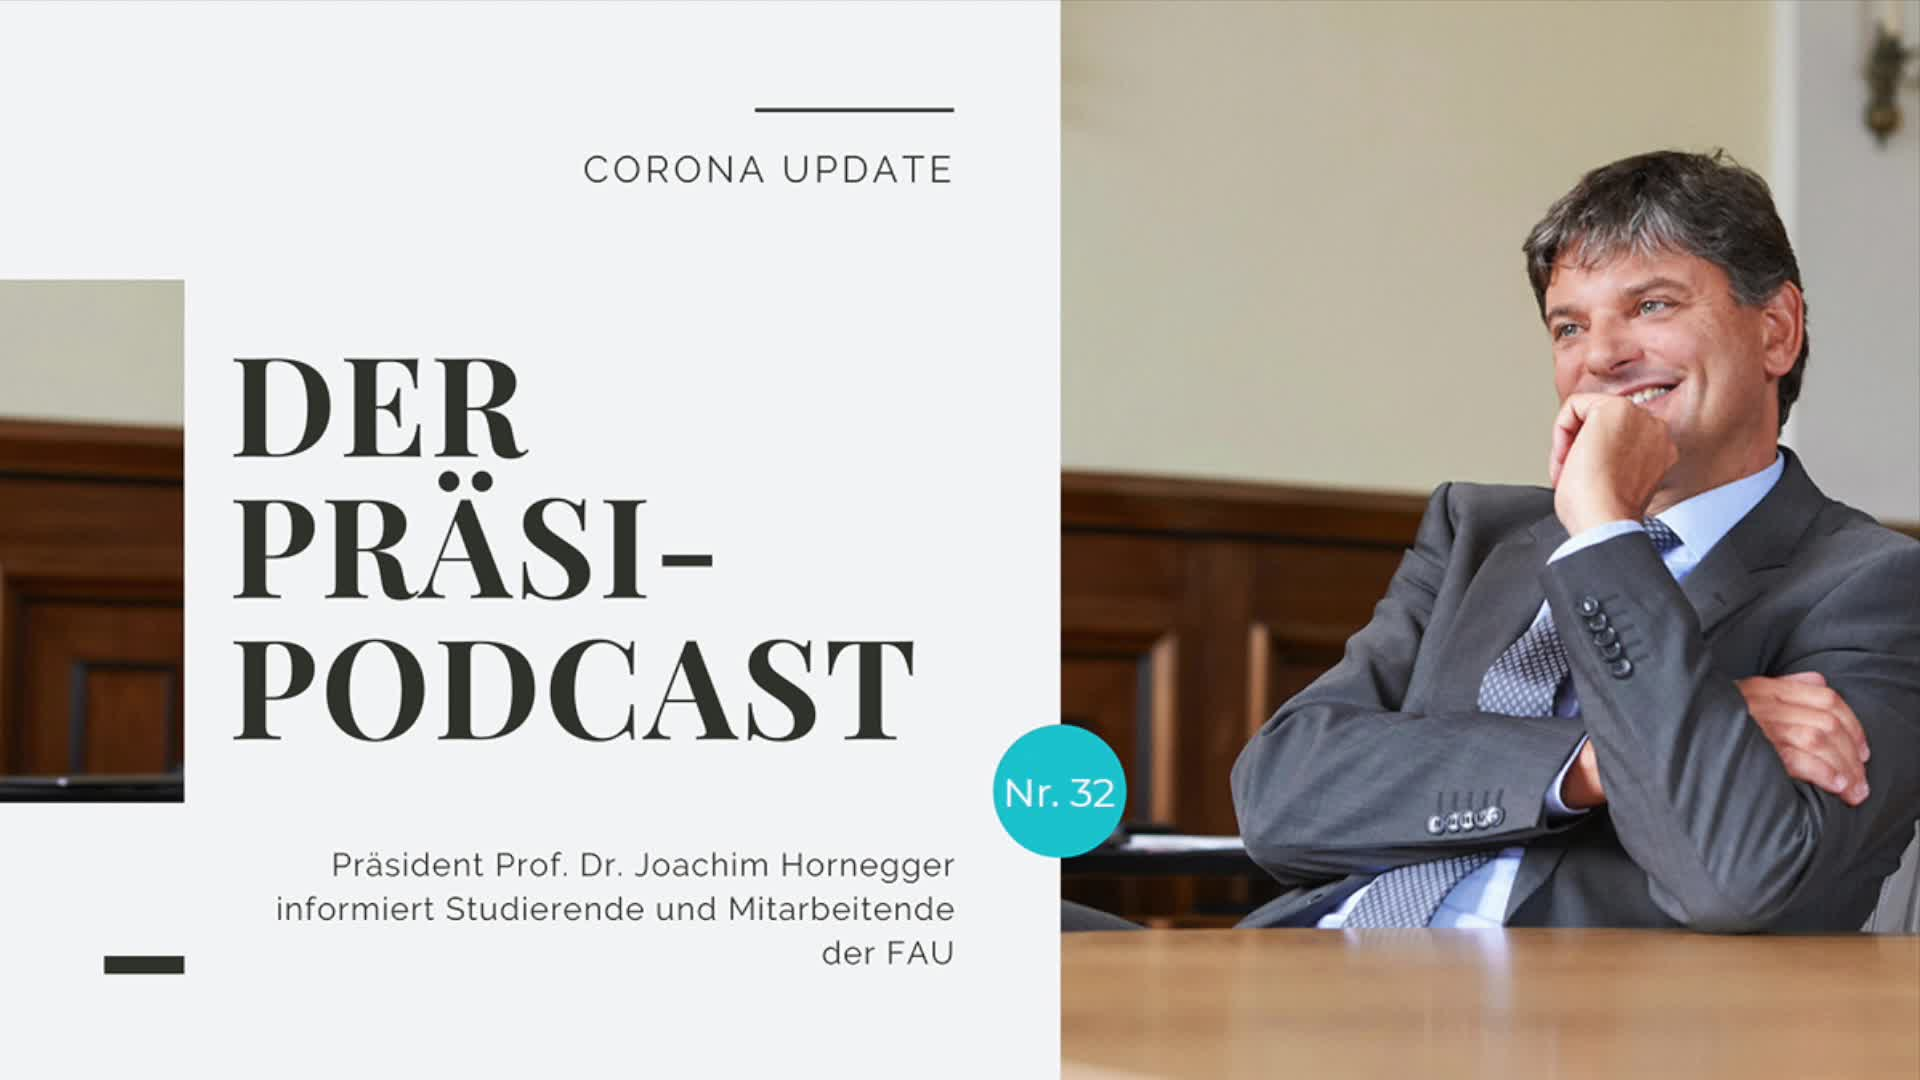 """Der Präsi-Podcast"" vom 26. November 2020 preview image"